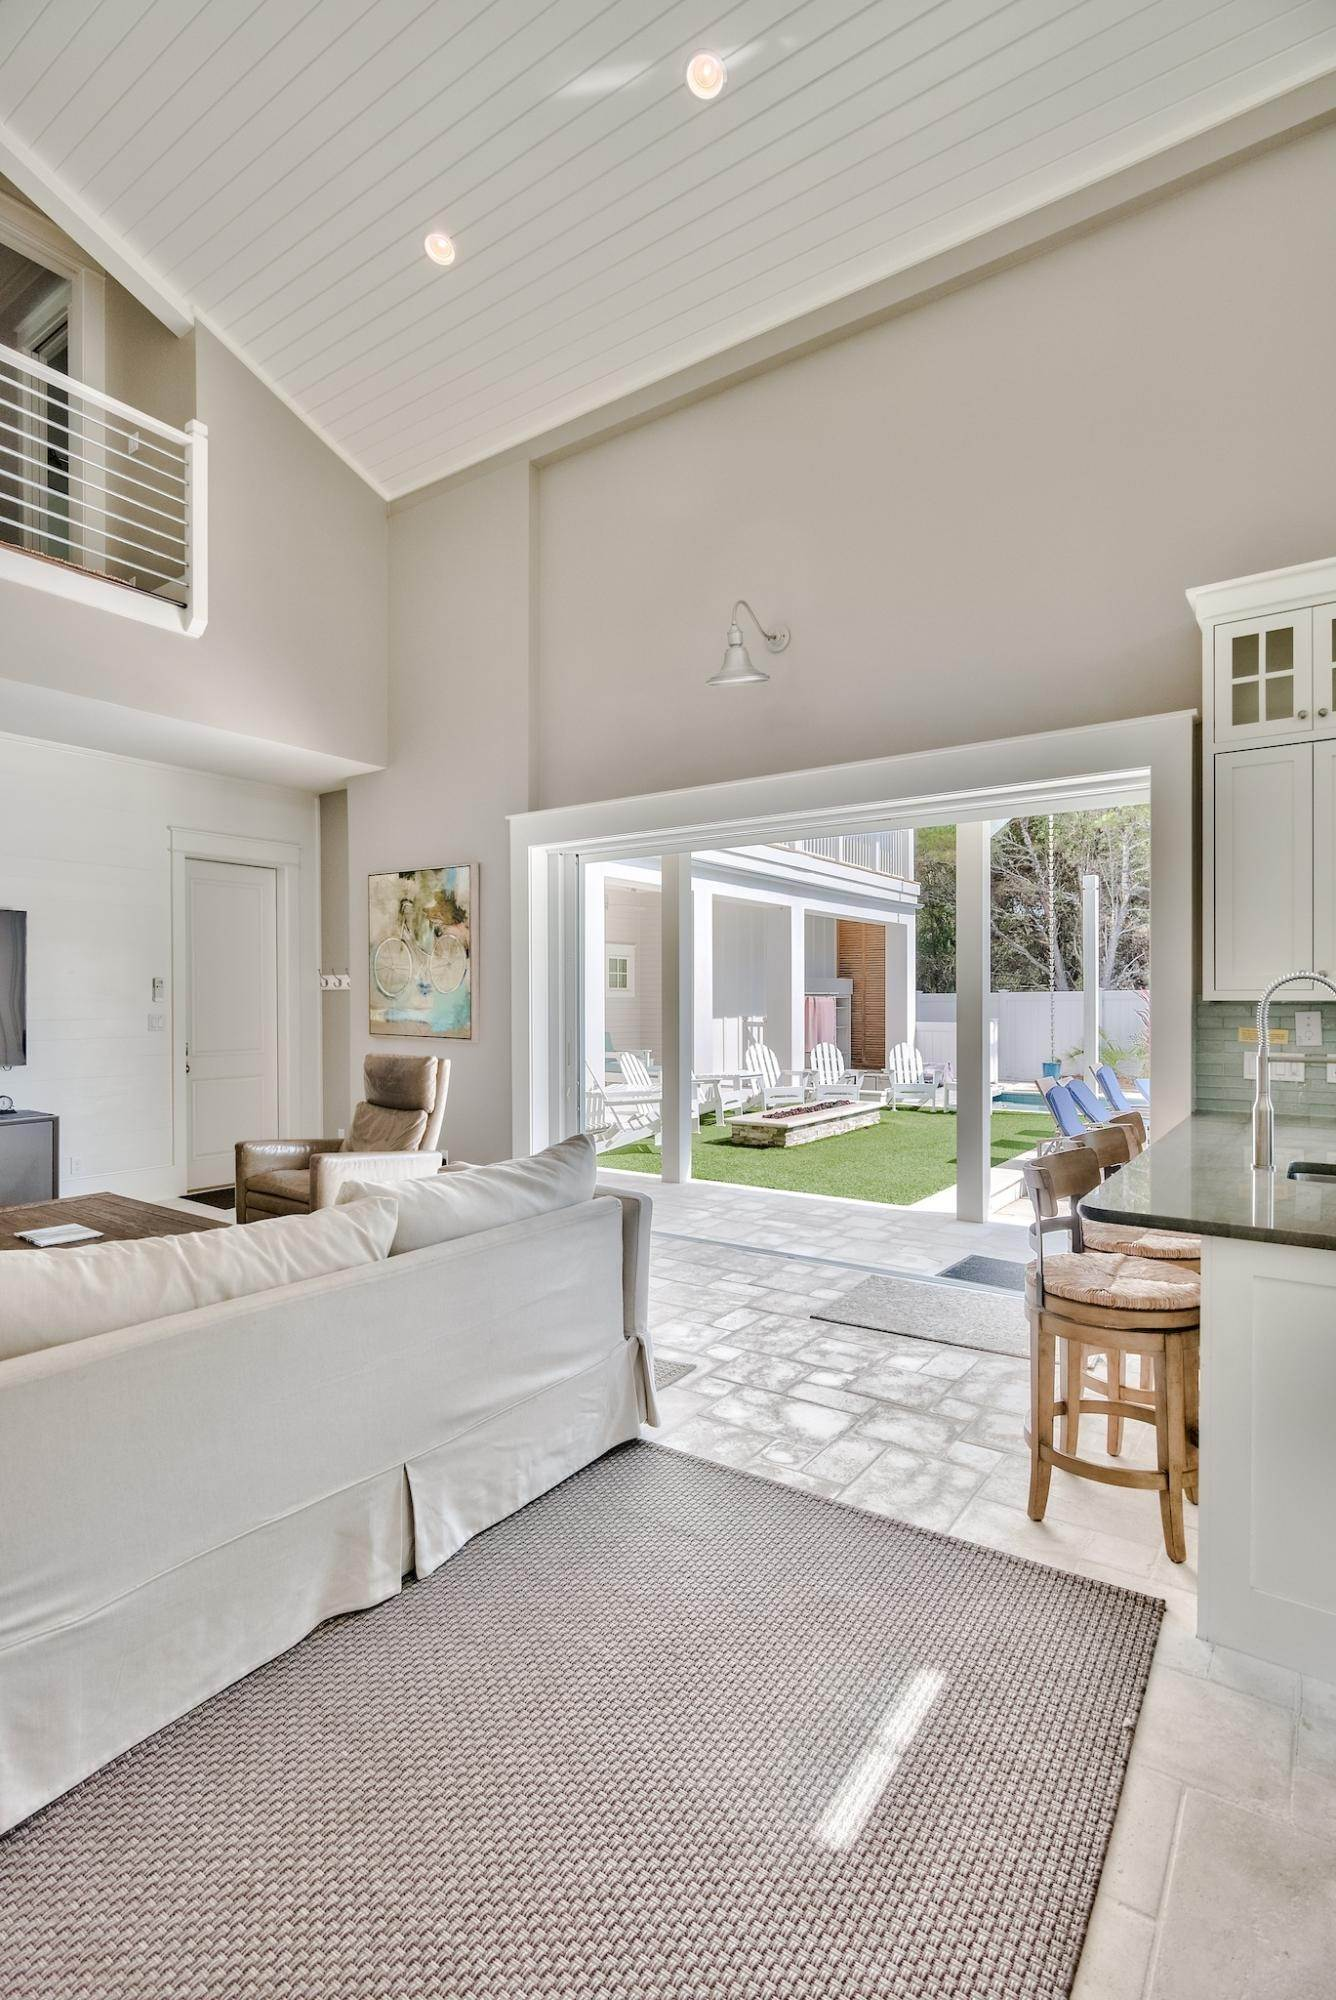 32. Single Family Home for Sale at 325 Walton Rose Lane Inlet Beach, Florida,32461 United States